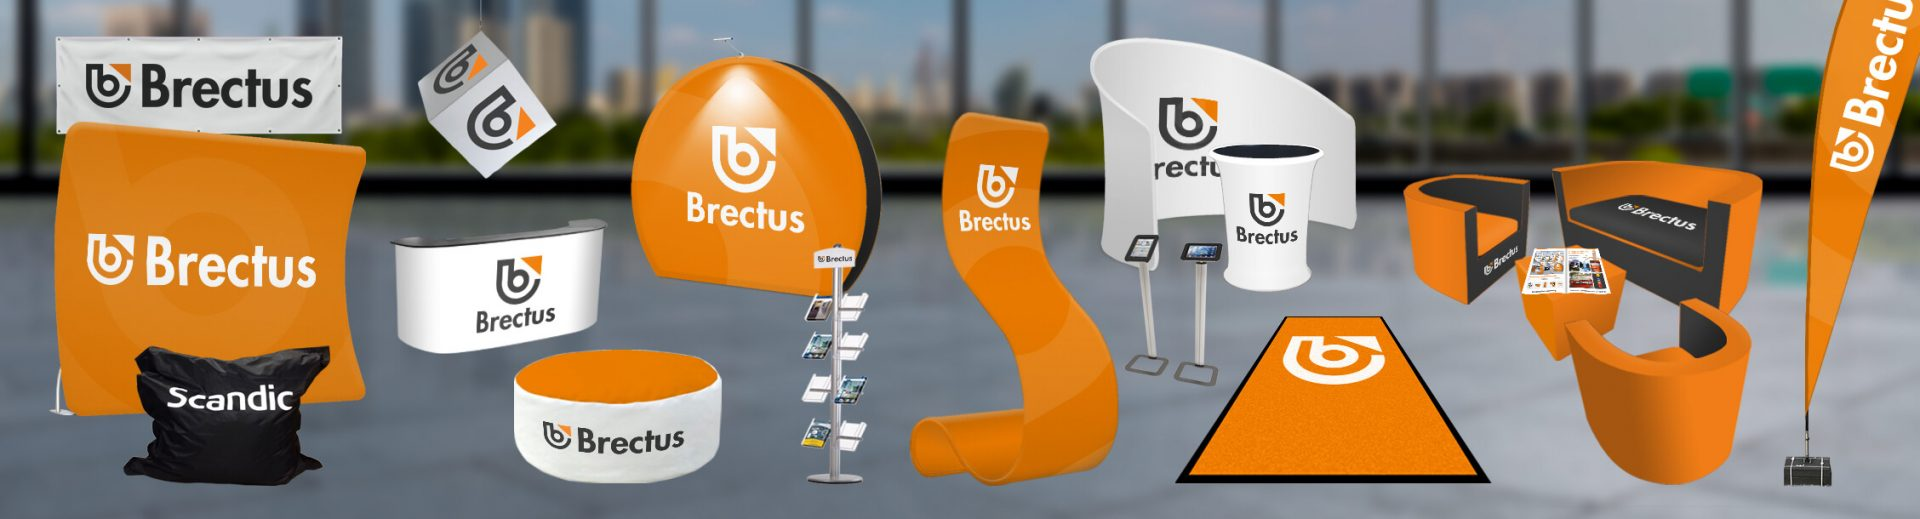 Exhibition Equipment Brectus Arena Advertising